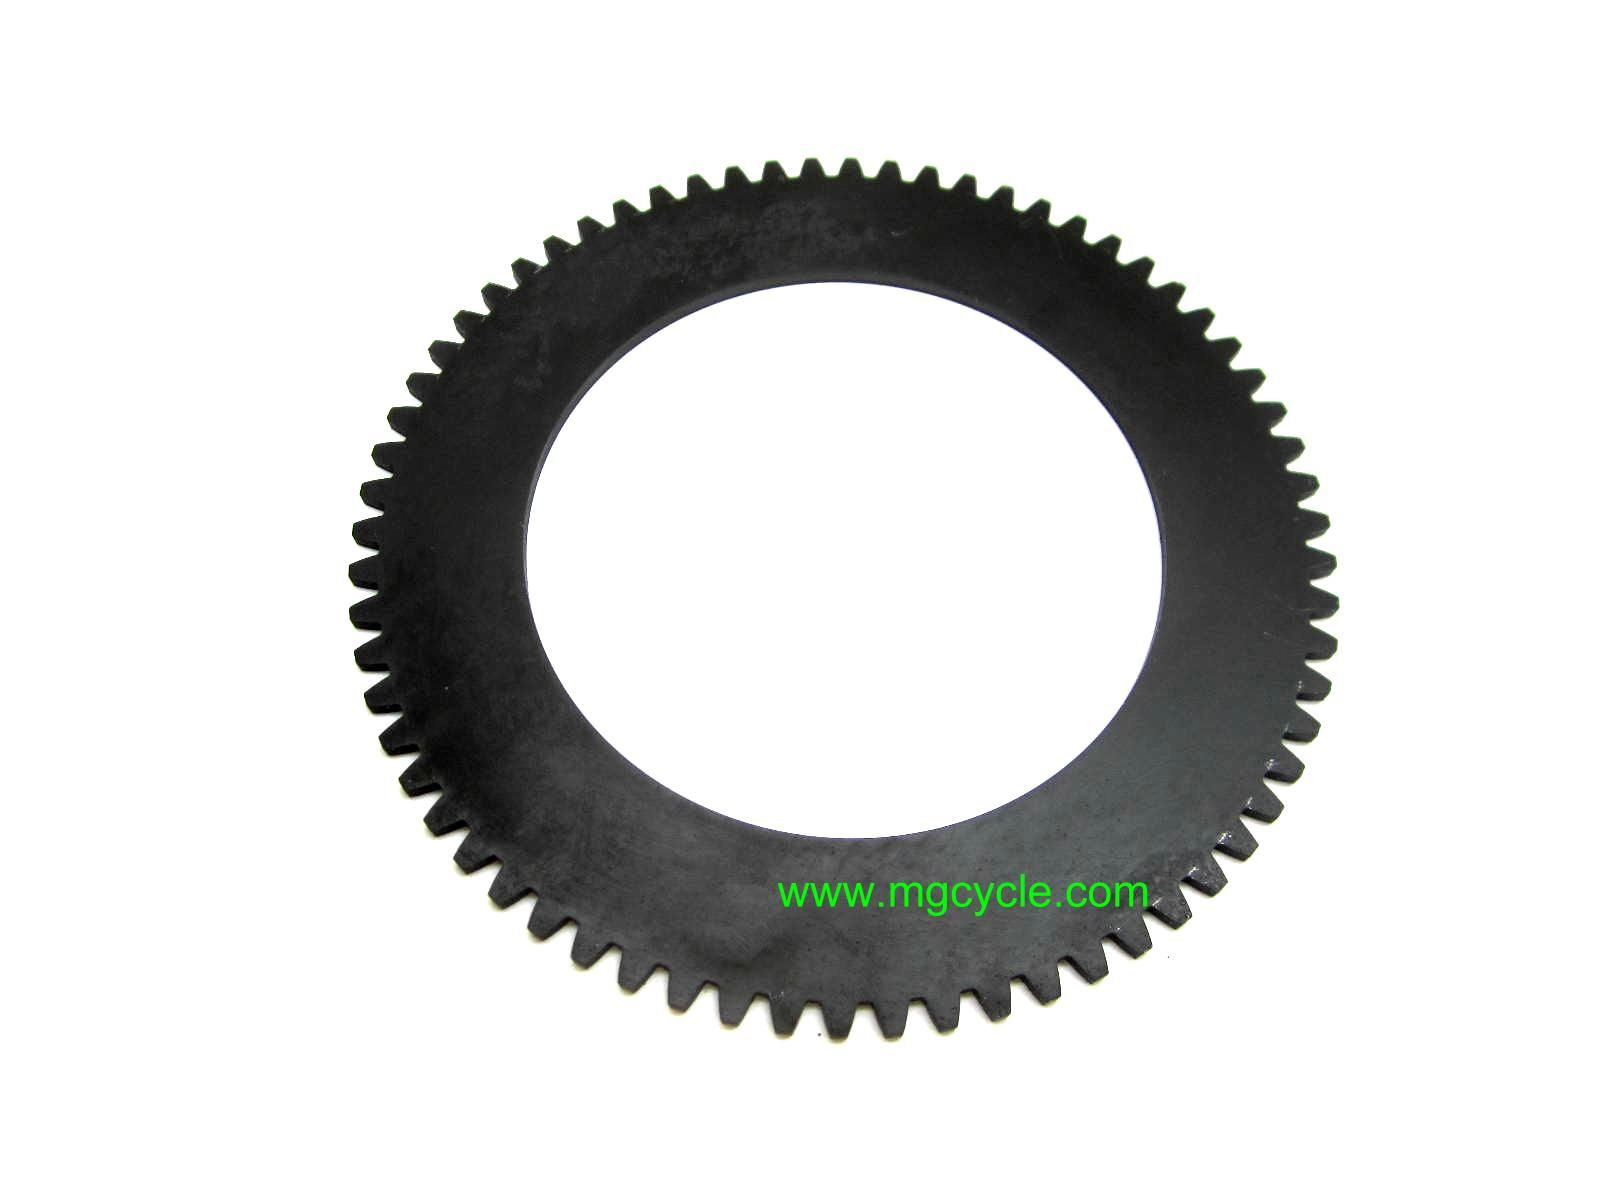 Clutch intermediate plate, anti-warp alternate for GU12082300